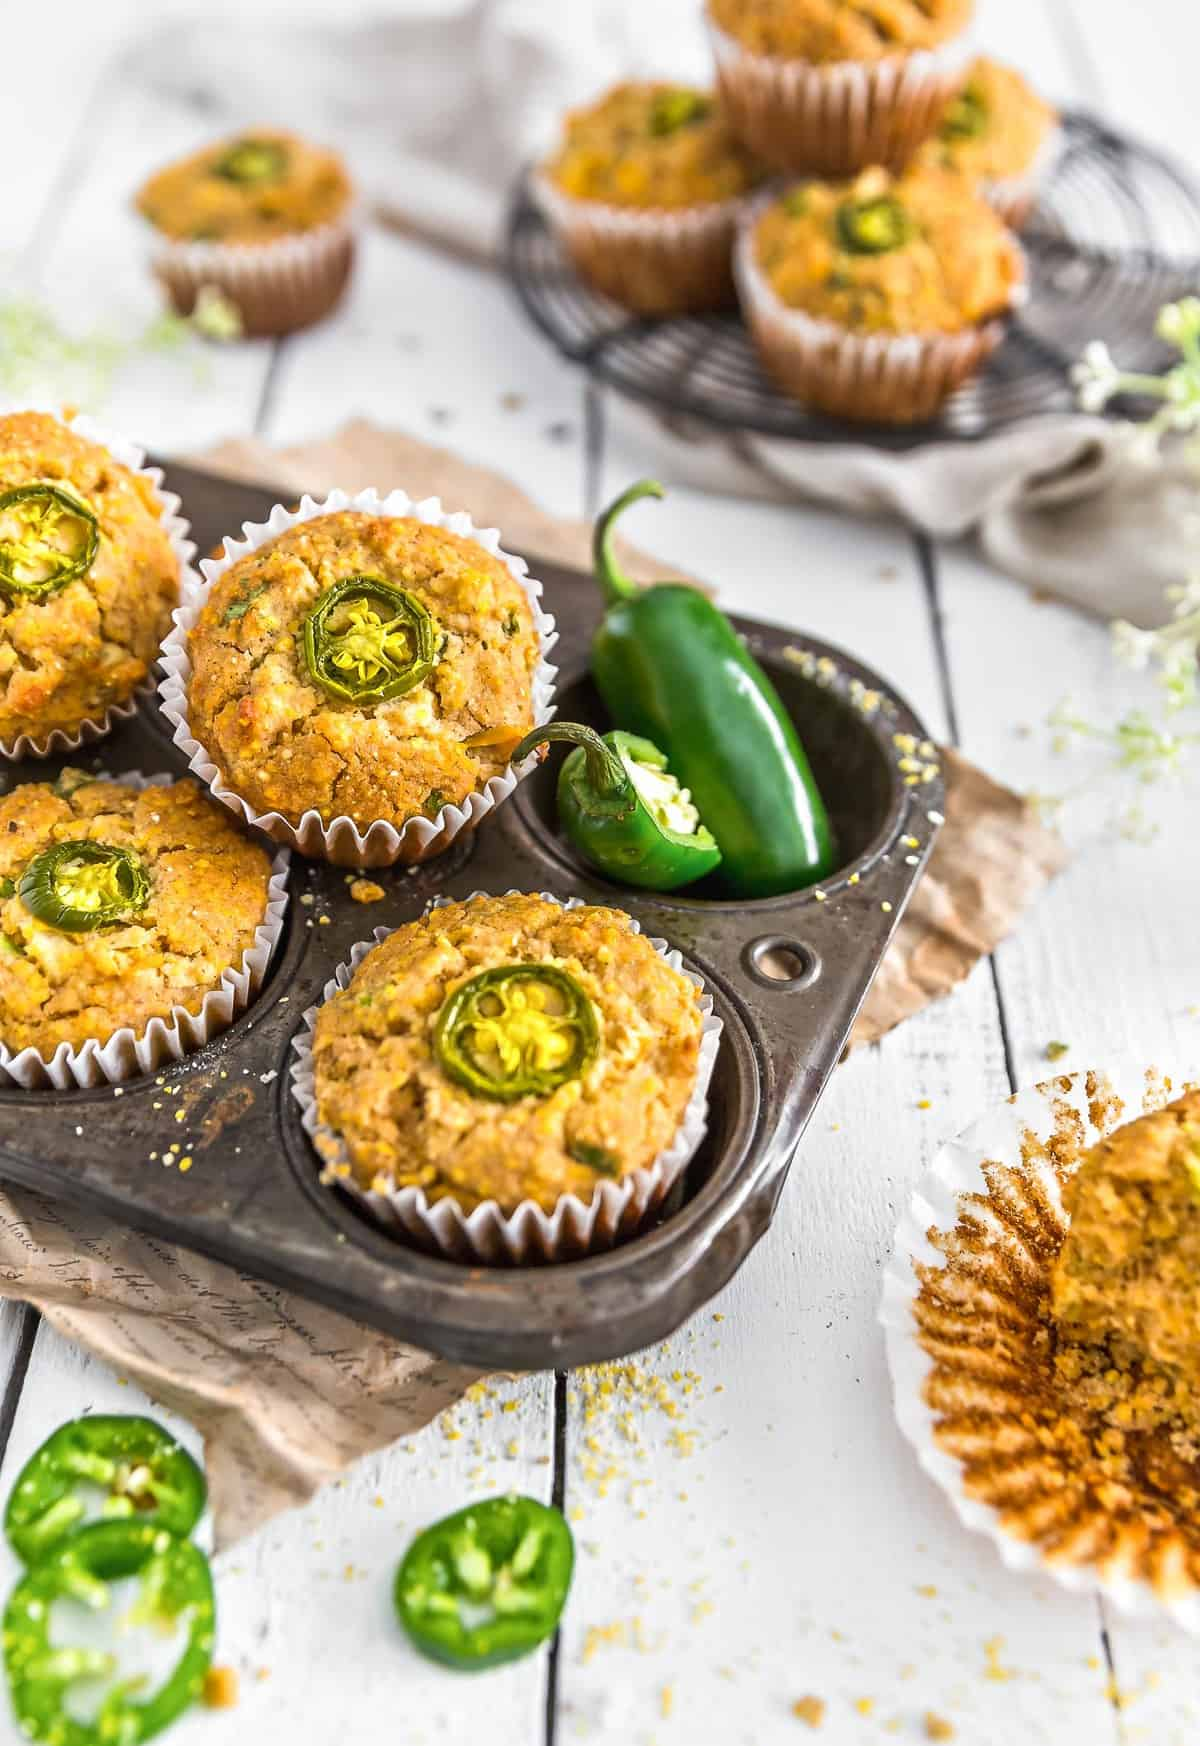 Jalapeño Corn Muffin, corn muffins, muffins, jalapeño, corn, plant based dessert, plant based, vegan, vegetarian, whole food plant based, gluten free, recipe, wfpb, healthy, healthy vegan, oil free, no refined sugar, no oil, refined sugar free, dairy free, sides, healthy recipe, vegan meal, savory muffins, cornbread, vegan cornbread, cornbread muffin, jalapeno, jalapeno corn muffin